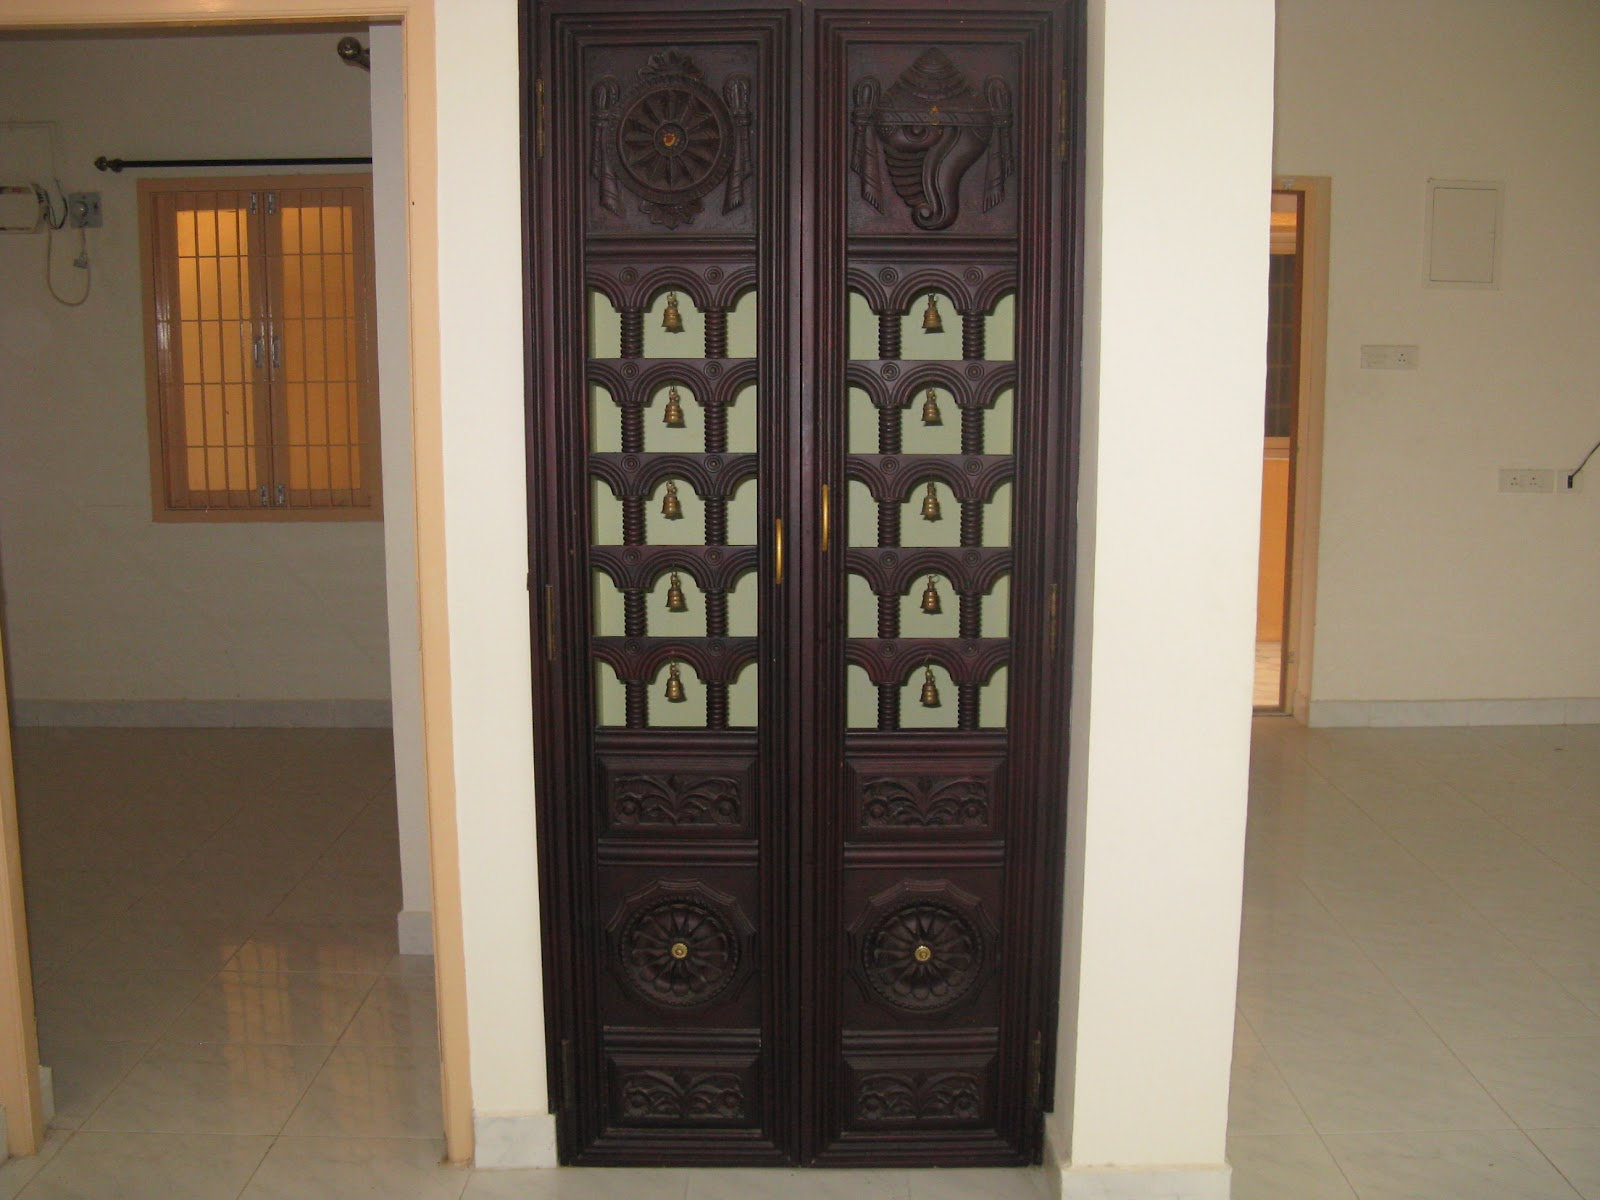 Pooja designs for your pooja doors for Pooja room interior designs